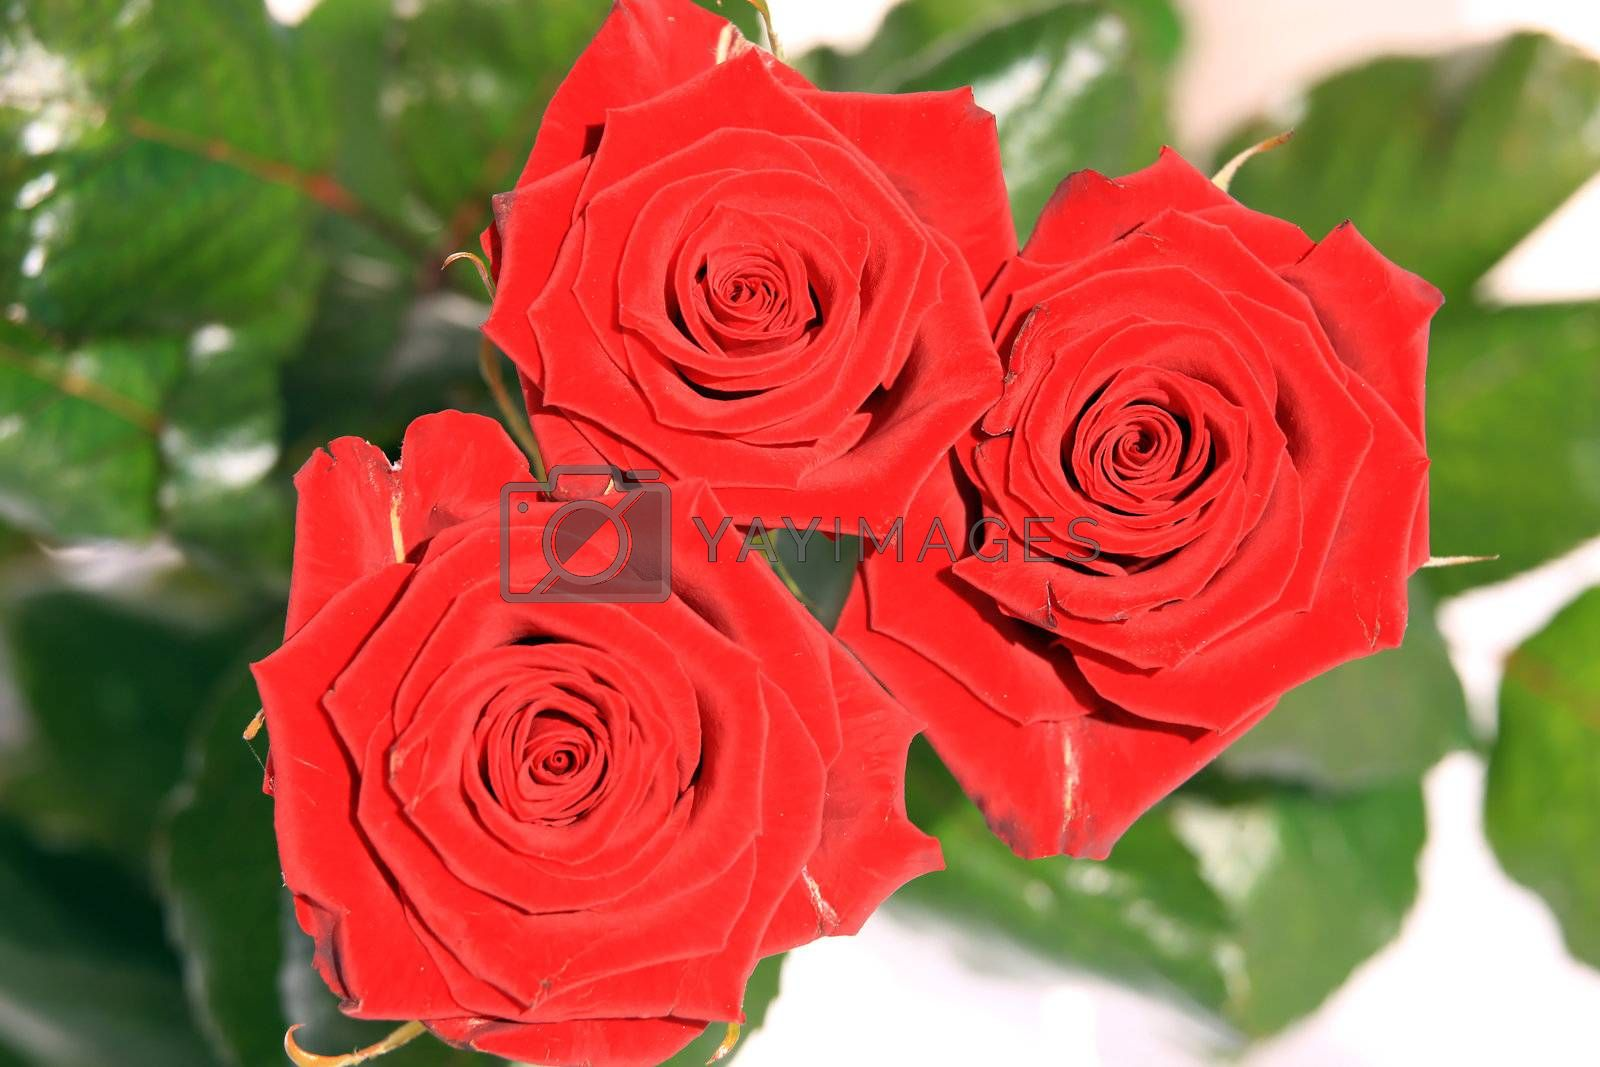 Royalty free image of Red Roses by monner